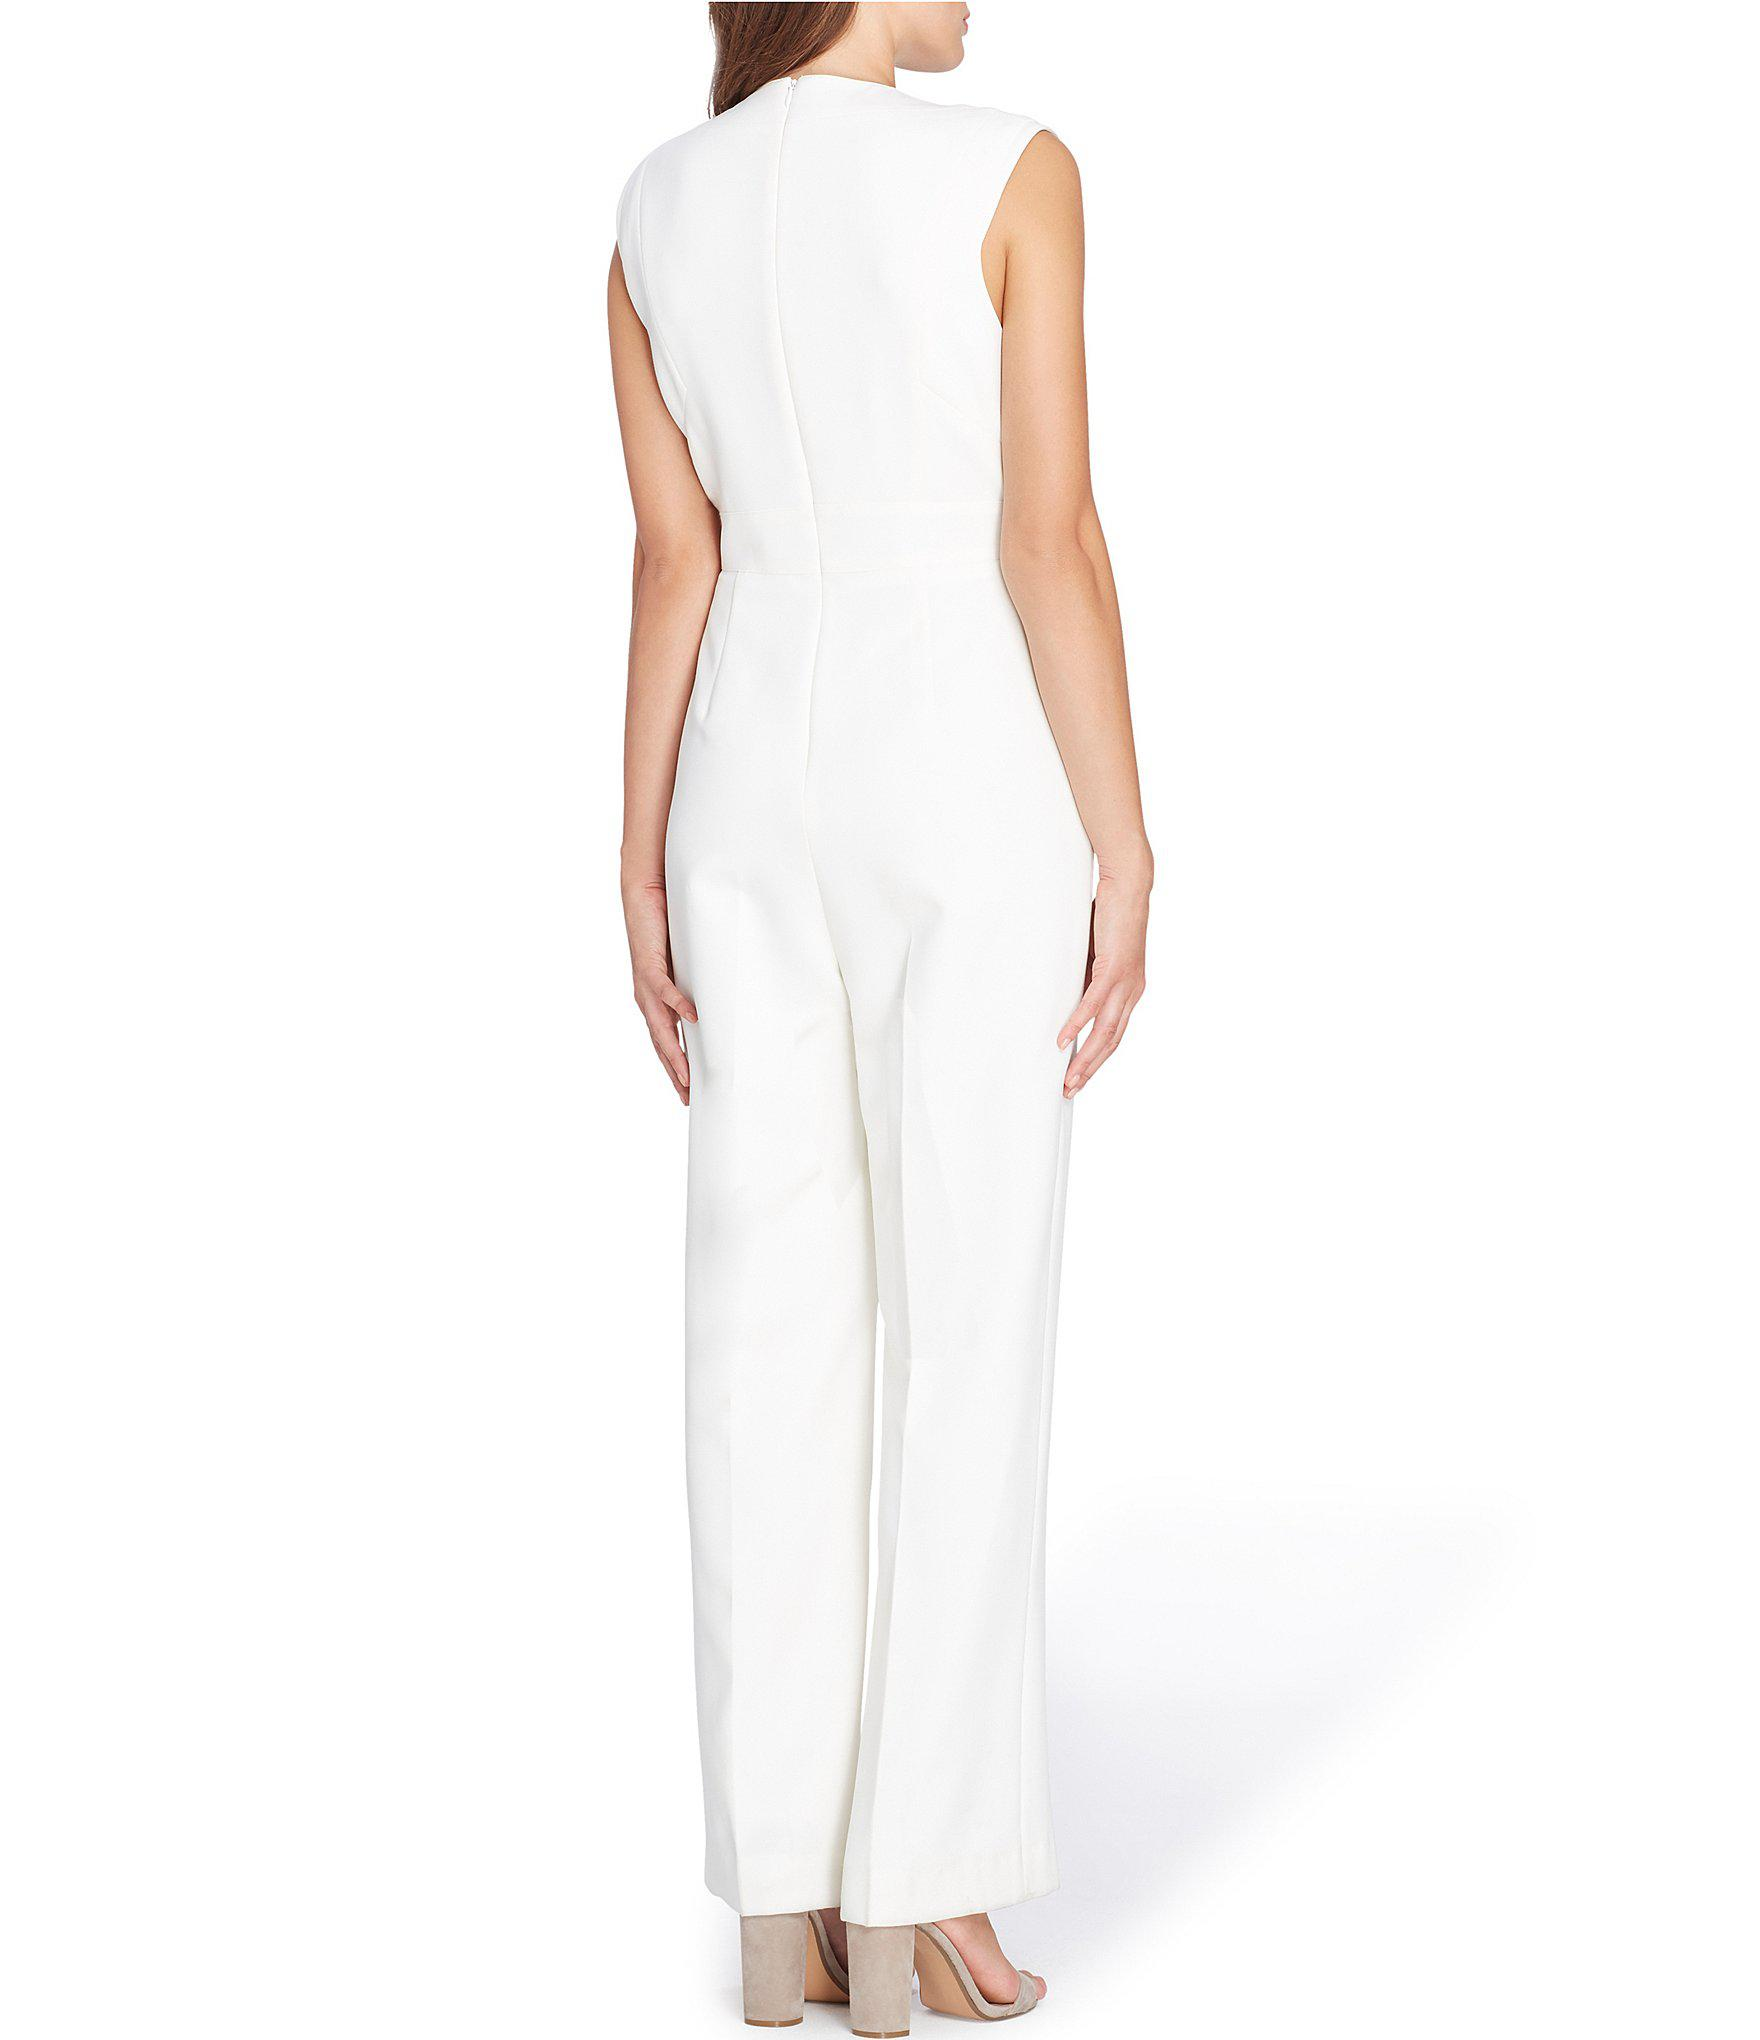 77dd0b20e99 ... Tahari By Asl Raised Collar Sleeveless Solid Crepe Jumpsuit - Lyst.  View fullscreen